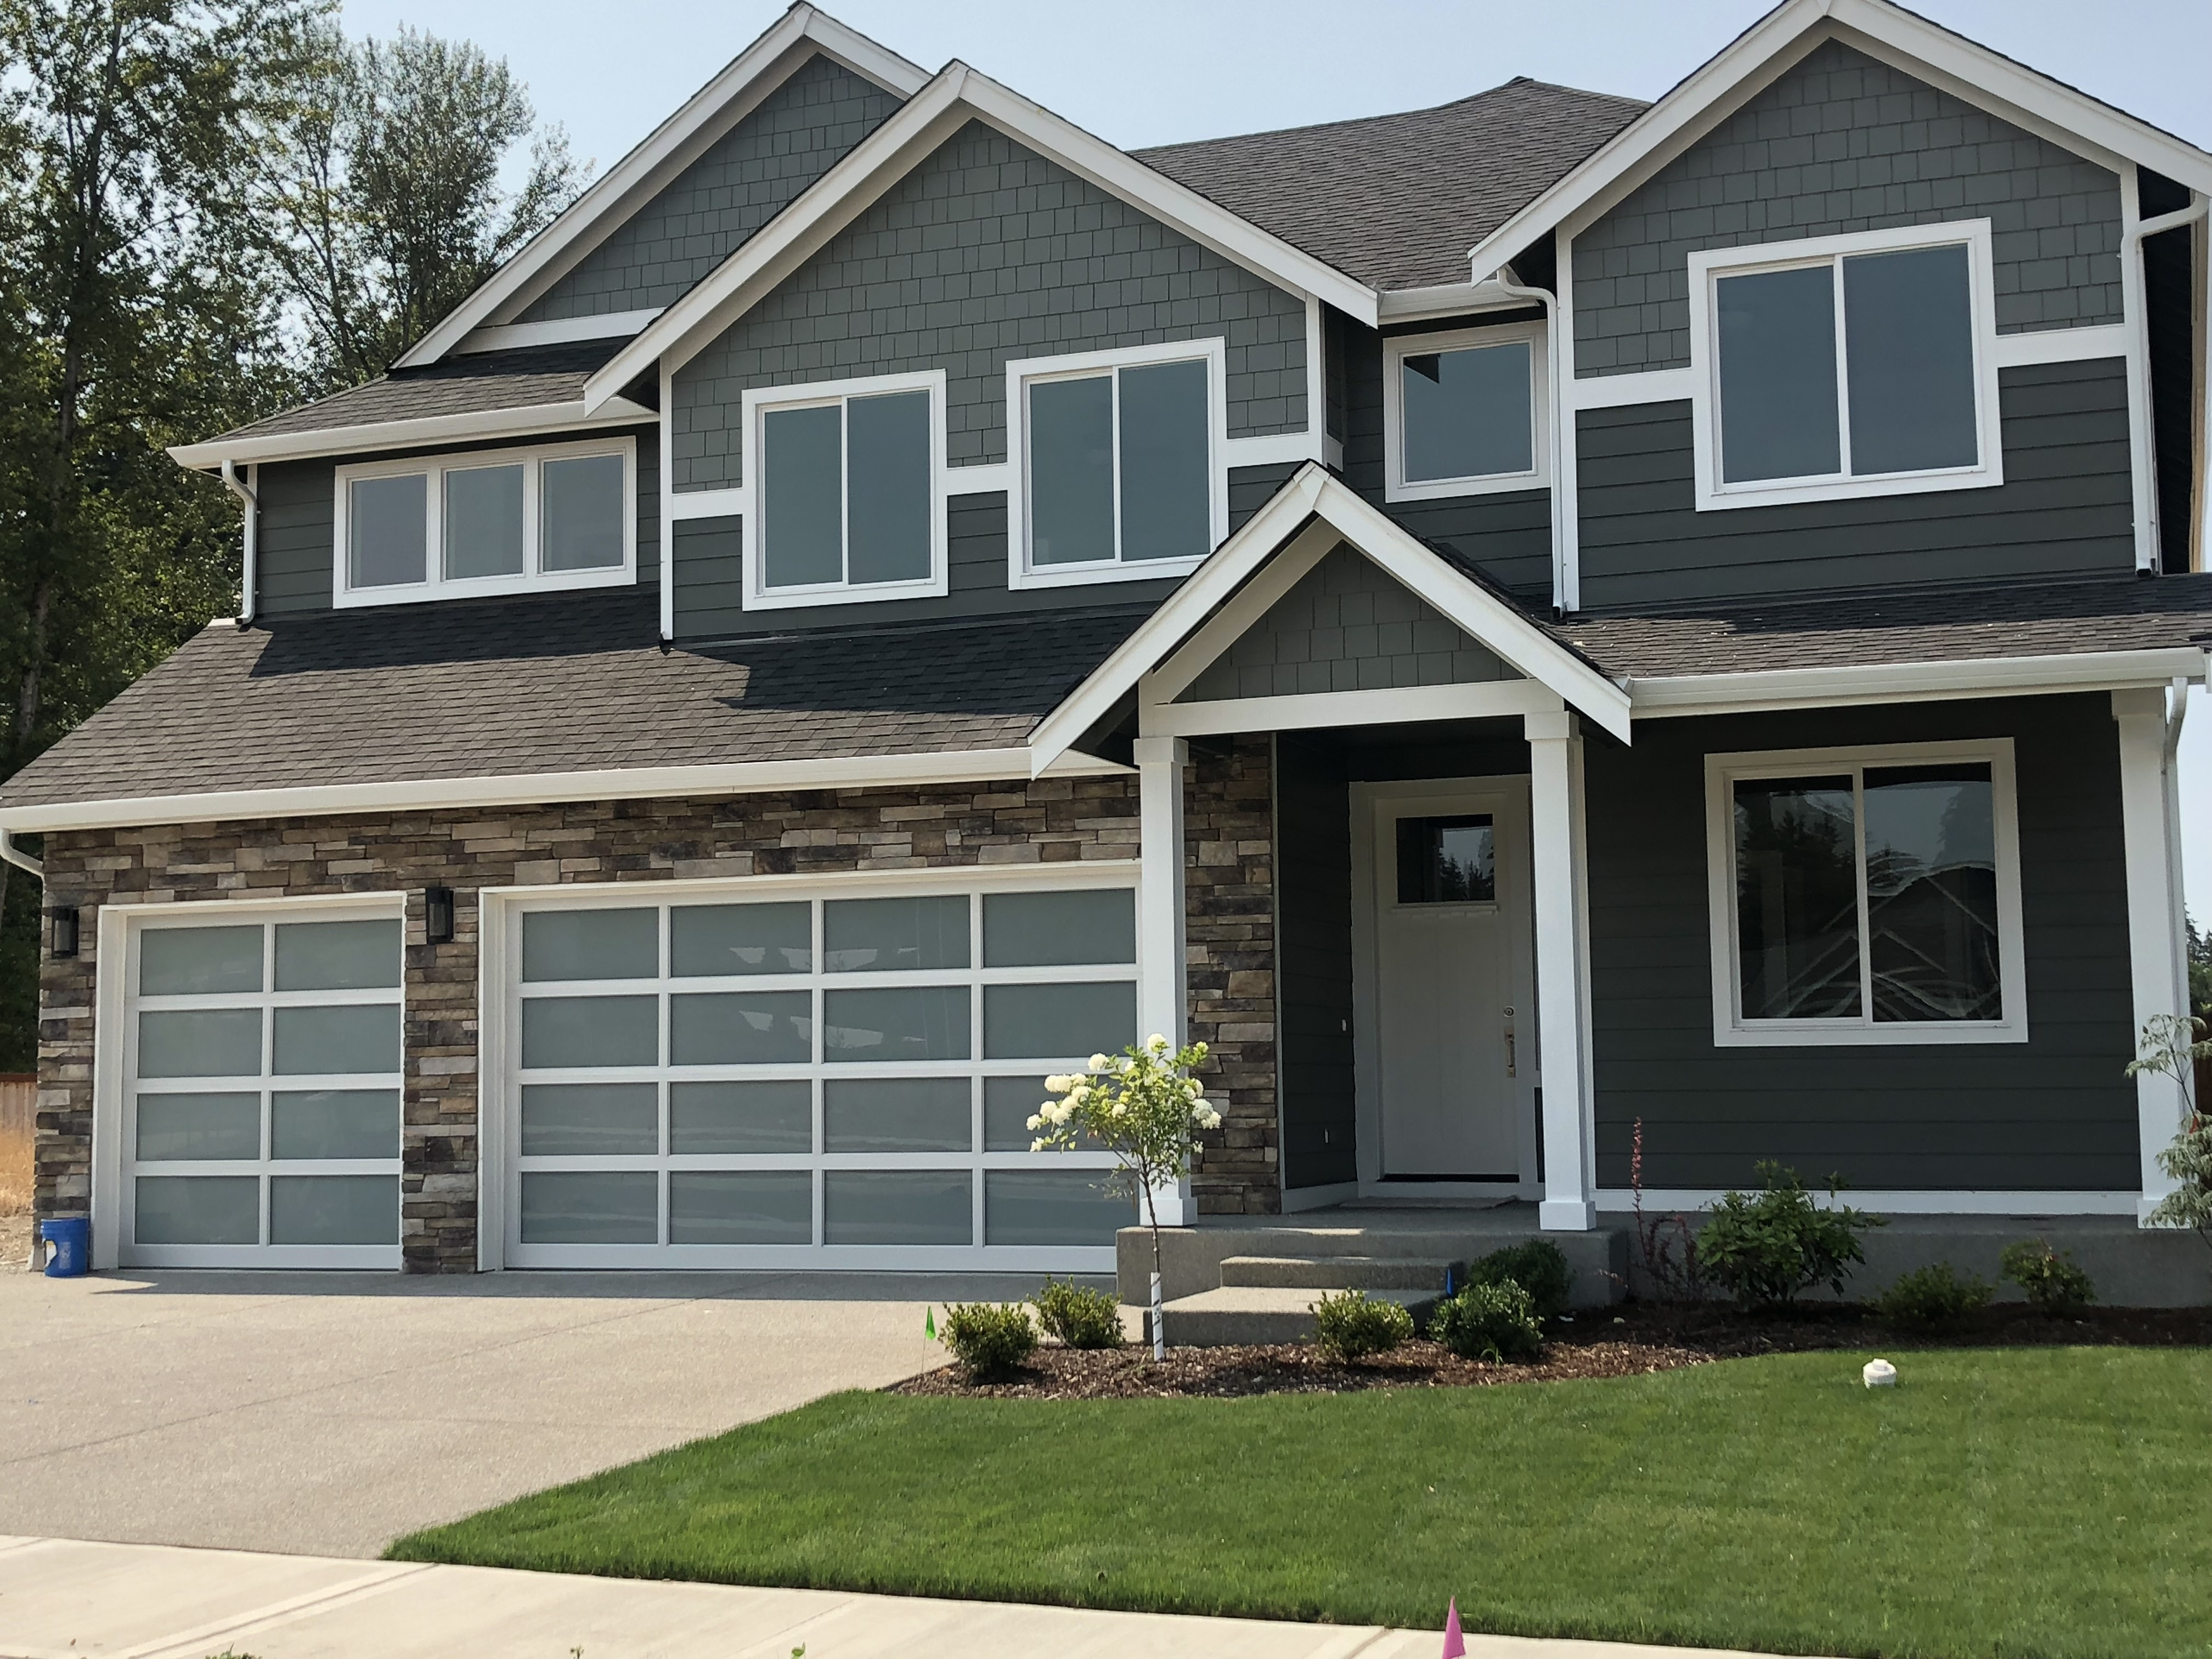 The Avalon - Newberry Trails - Puyallup, WA - New Home - Rush Residential Washington Home Builder